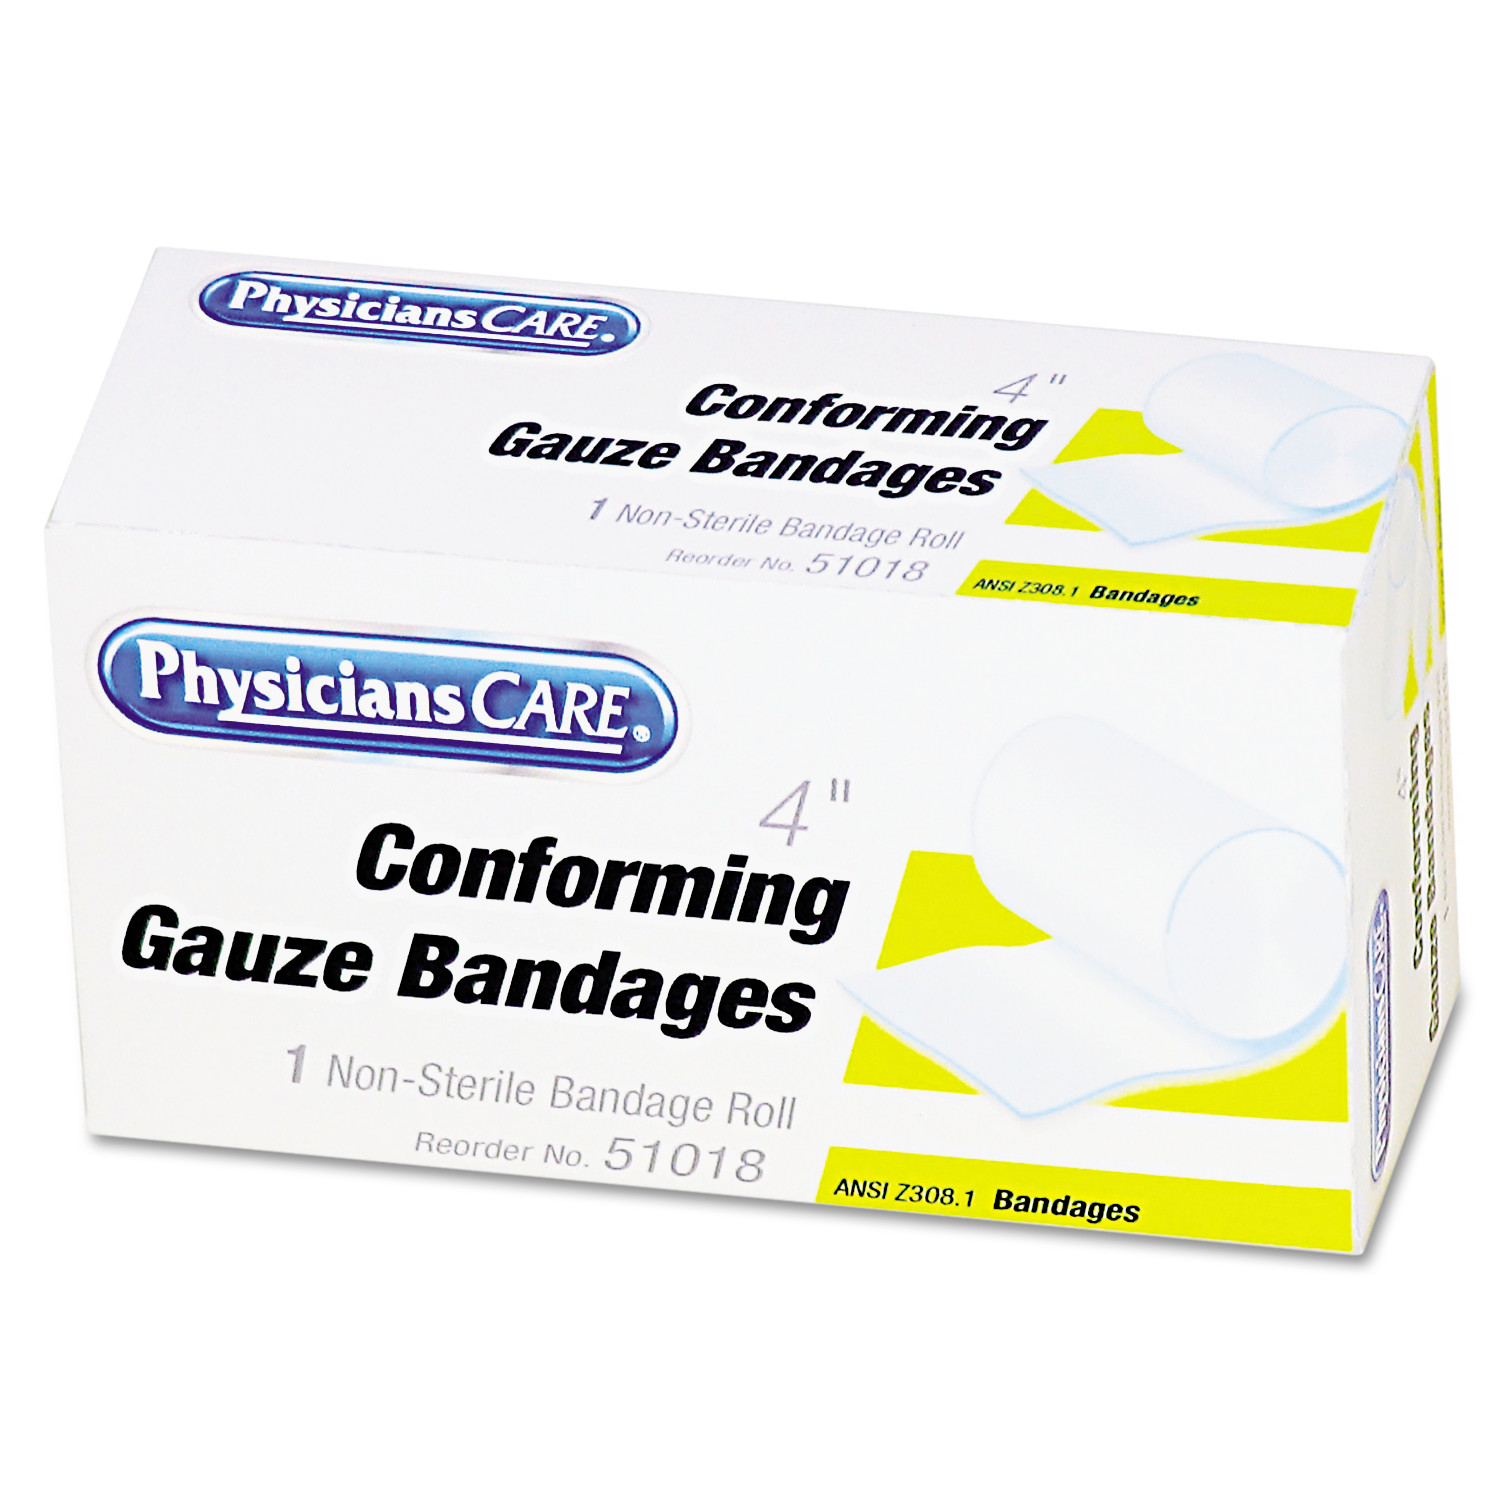 "PhysiciansCare by First Aid Only First Aid Conforming Gauze Bandage, 4"" wide"